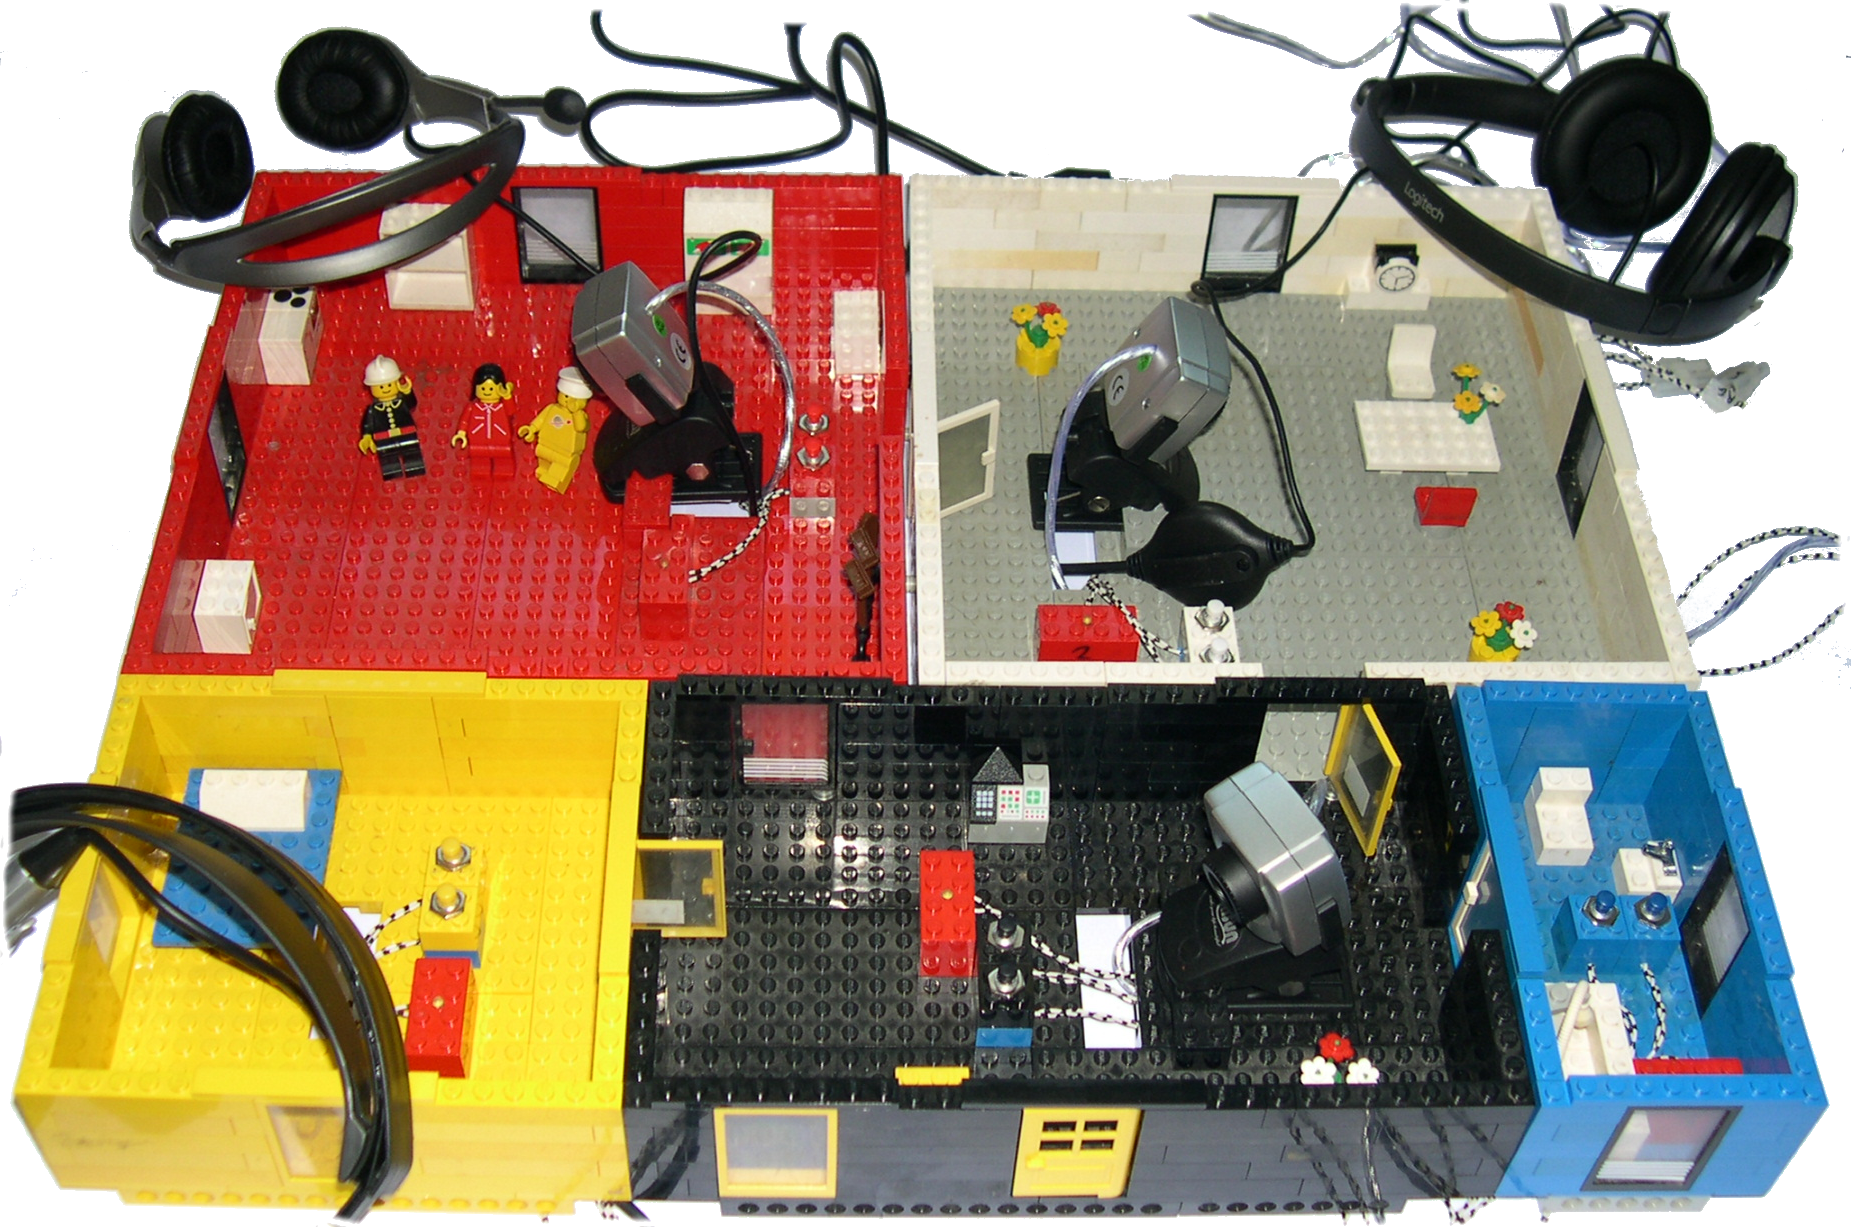 The Lego-eHome-demonstrator in its normal setup.